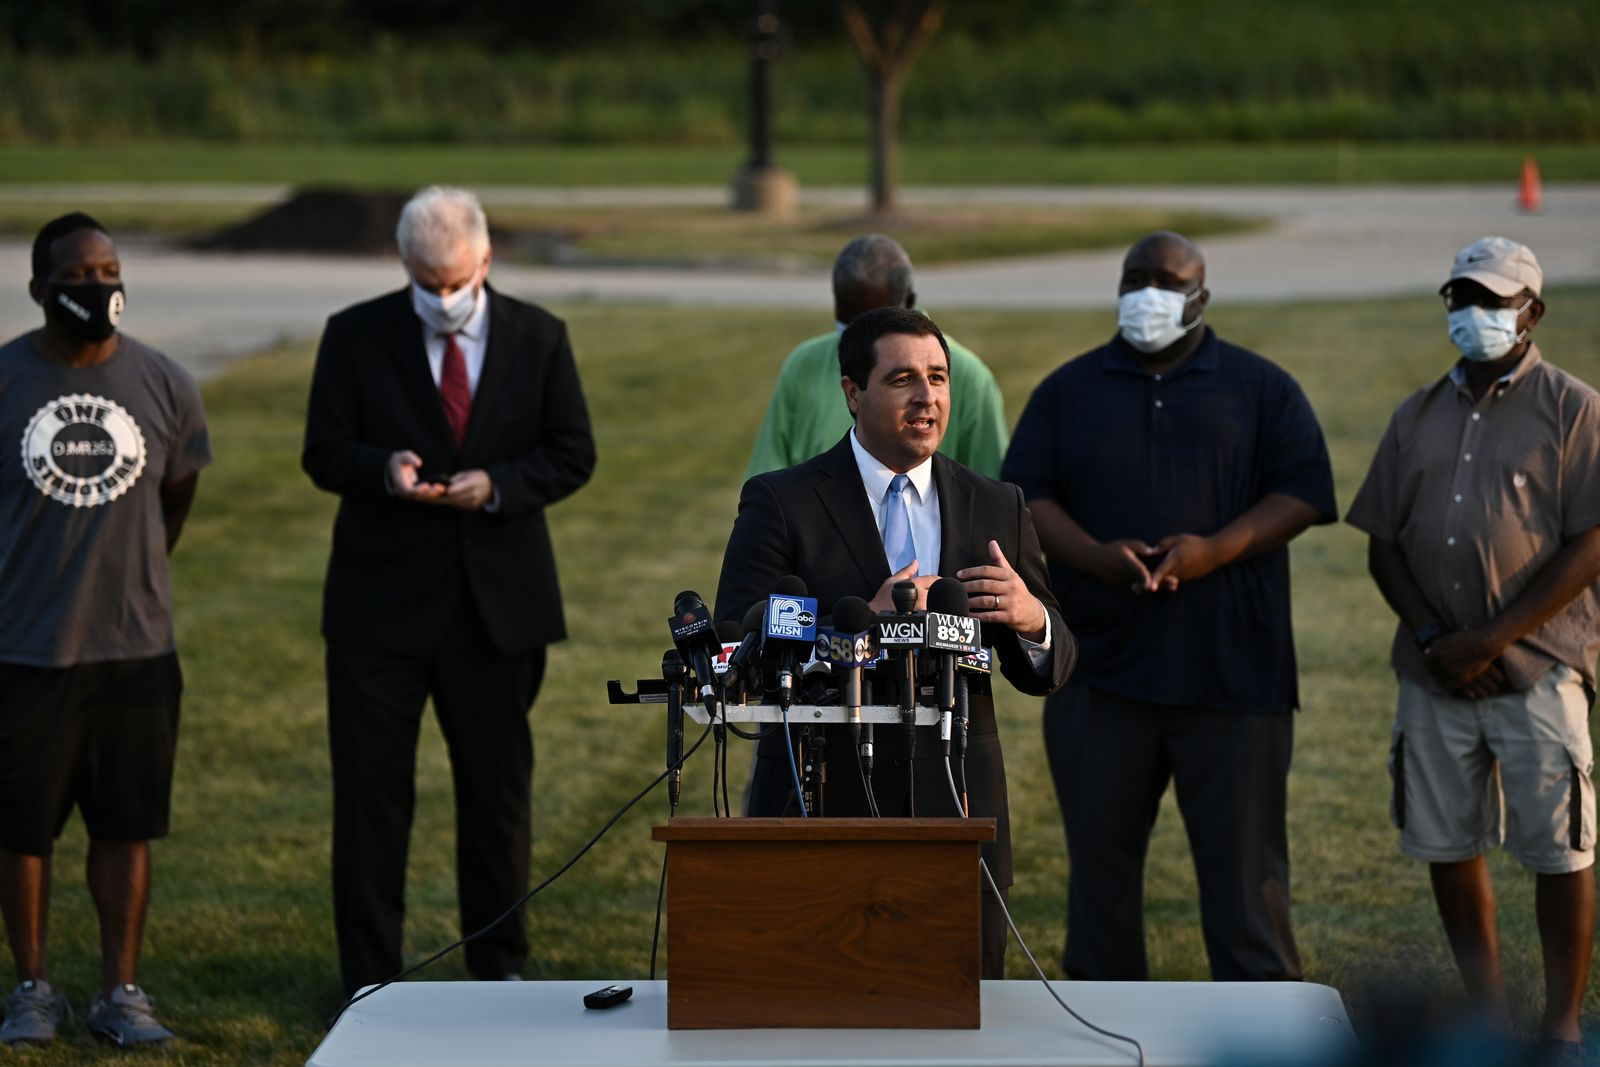 Wisconsin Attorney General Josh Kaul speaks following the police shooting of Jacob Blake, a Black man, in Kenosha